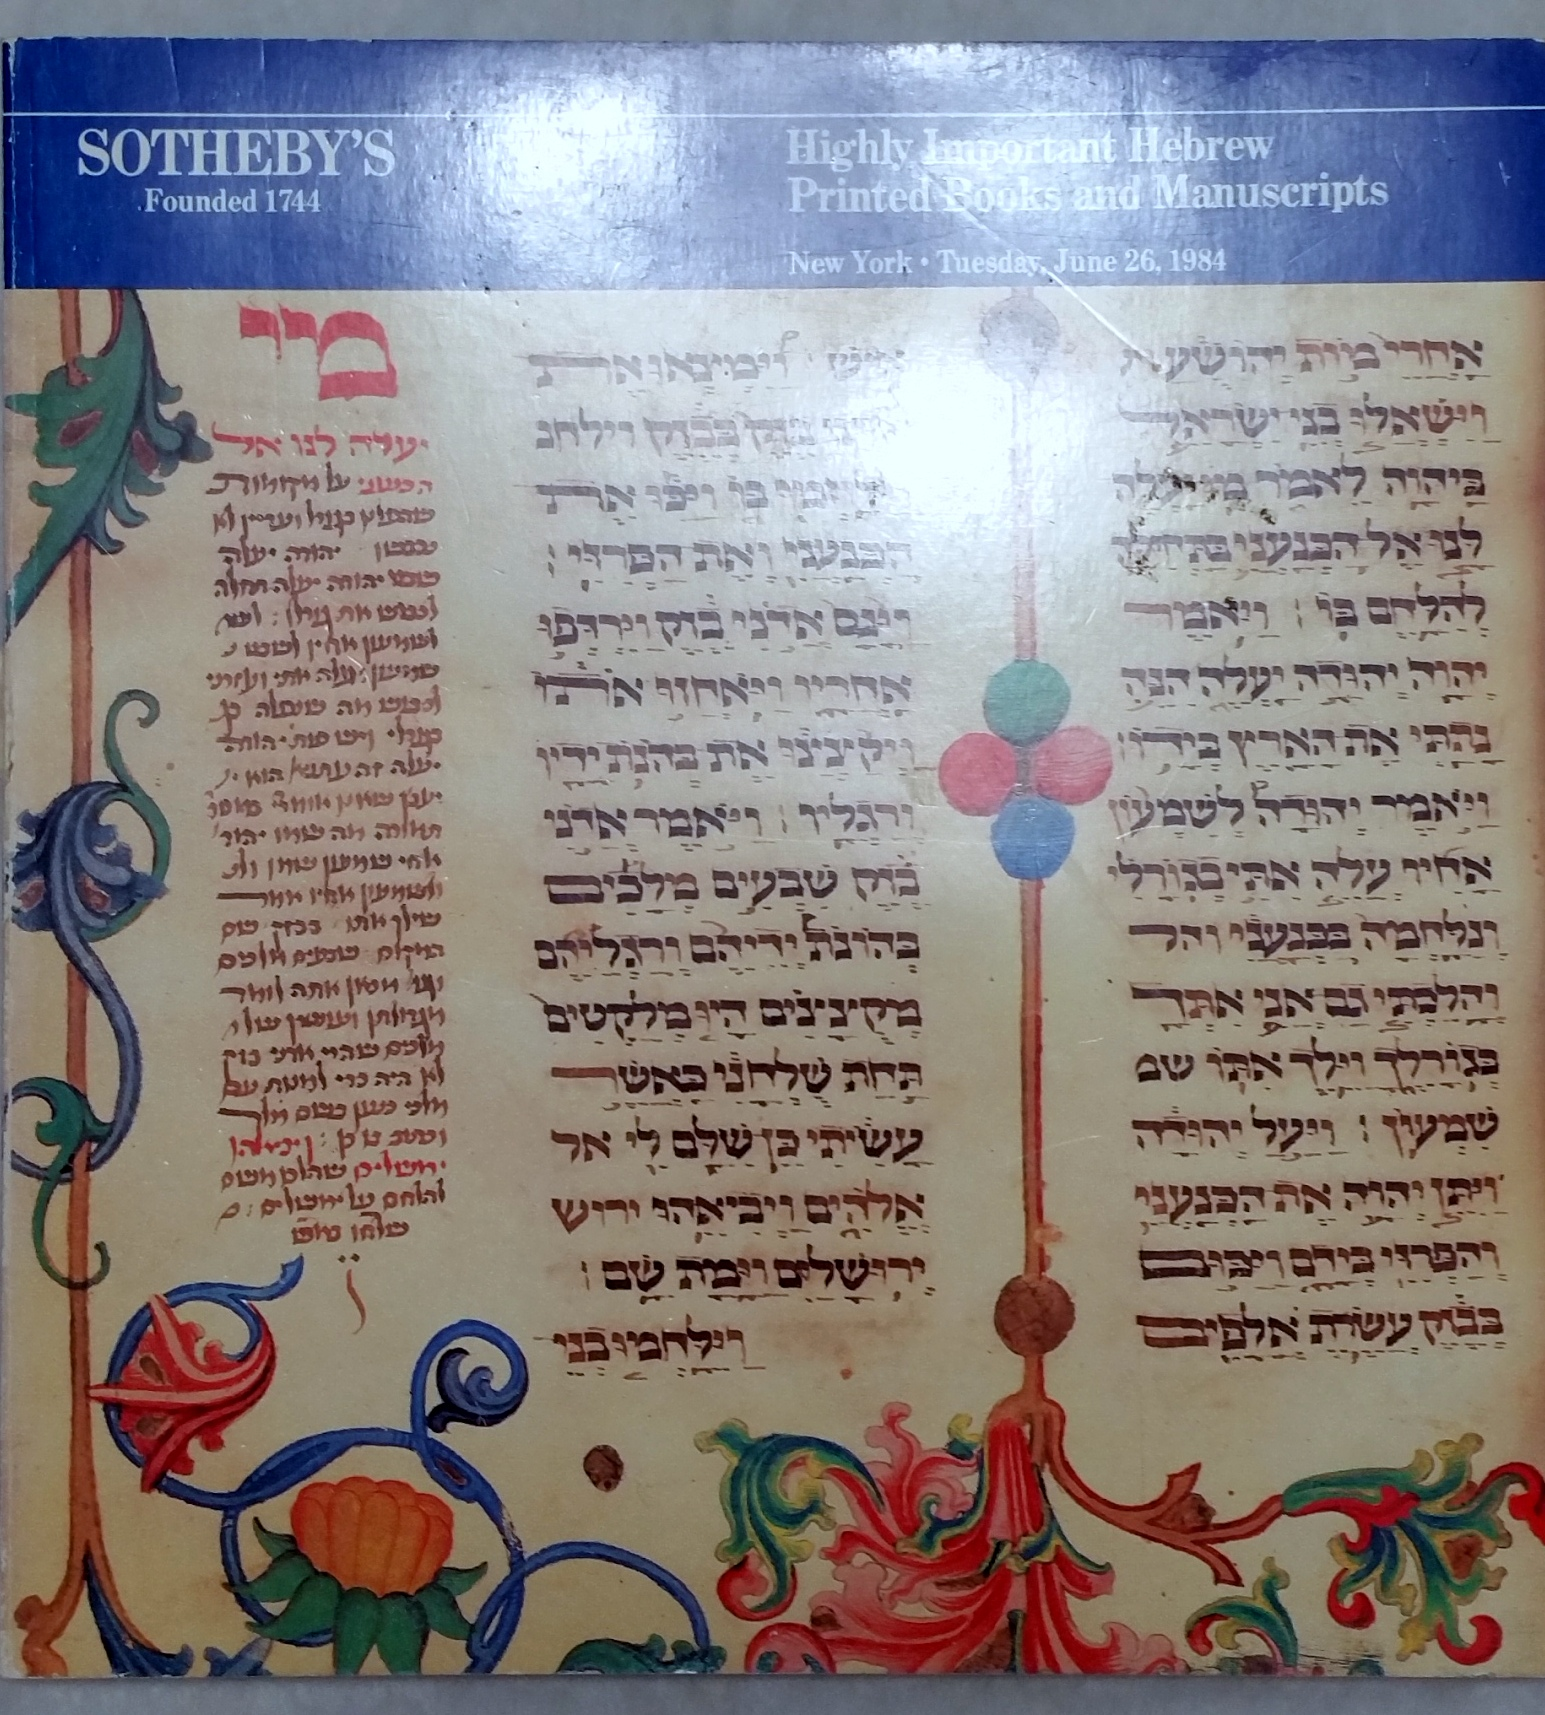 Image for Highly Important Hebrew Printed Books and Manuscripts (Sotheby's New York, Tuesday, June 26, 1984)